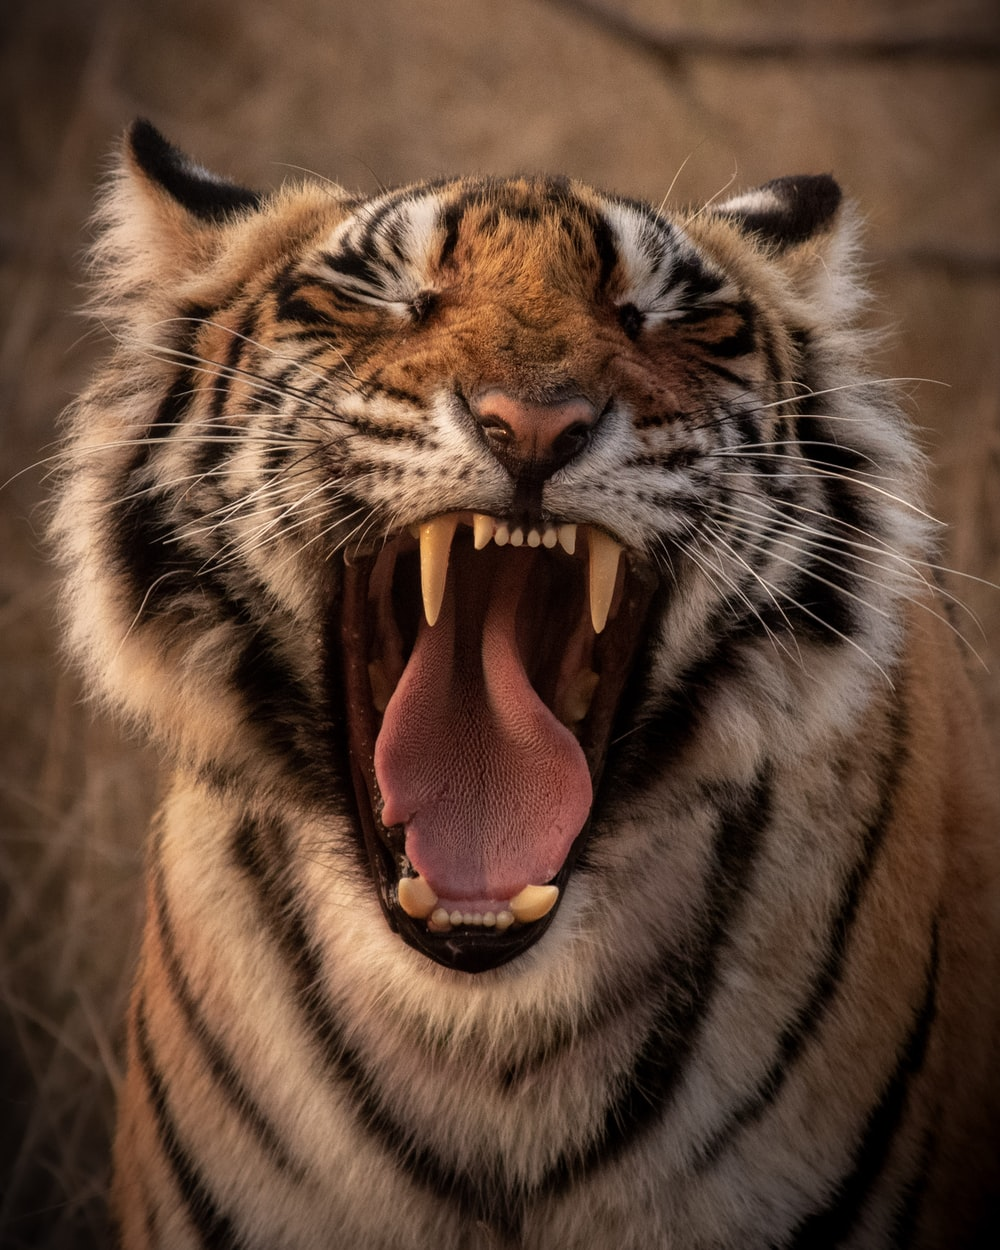 brown and black tiger showing tongue